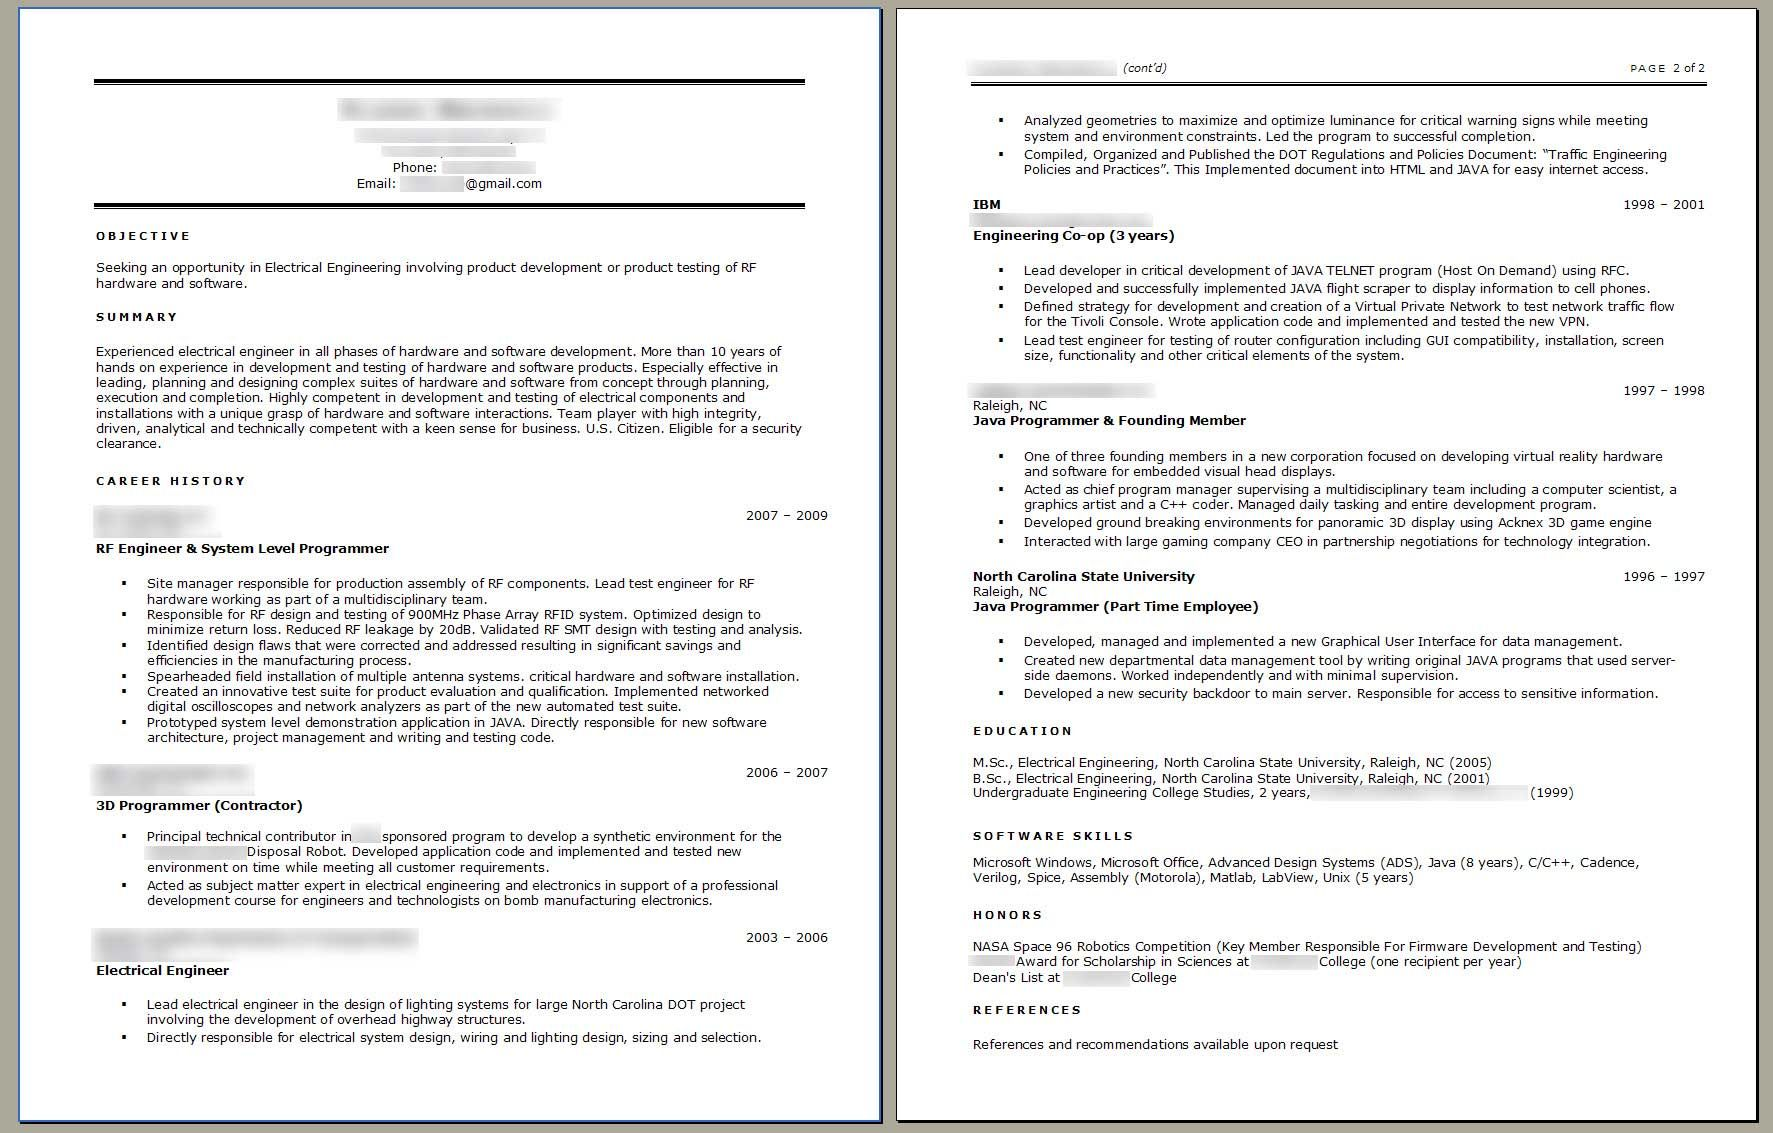 Electrical Engineer Resume Example  HttpWwwResumecareerInfo